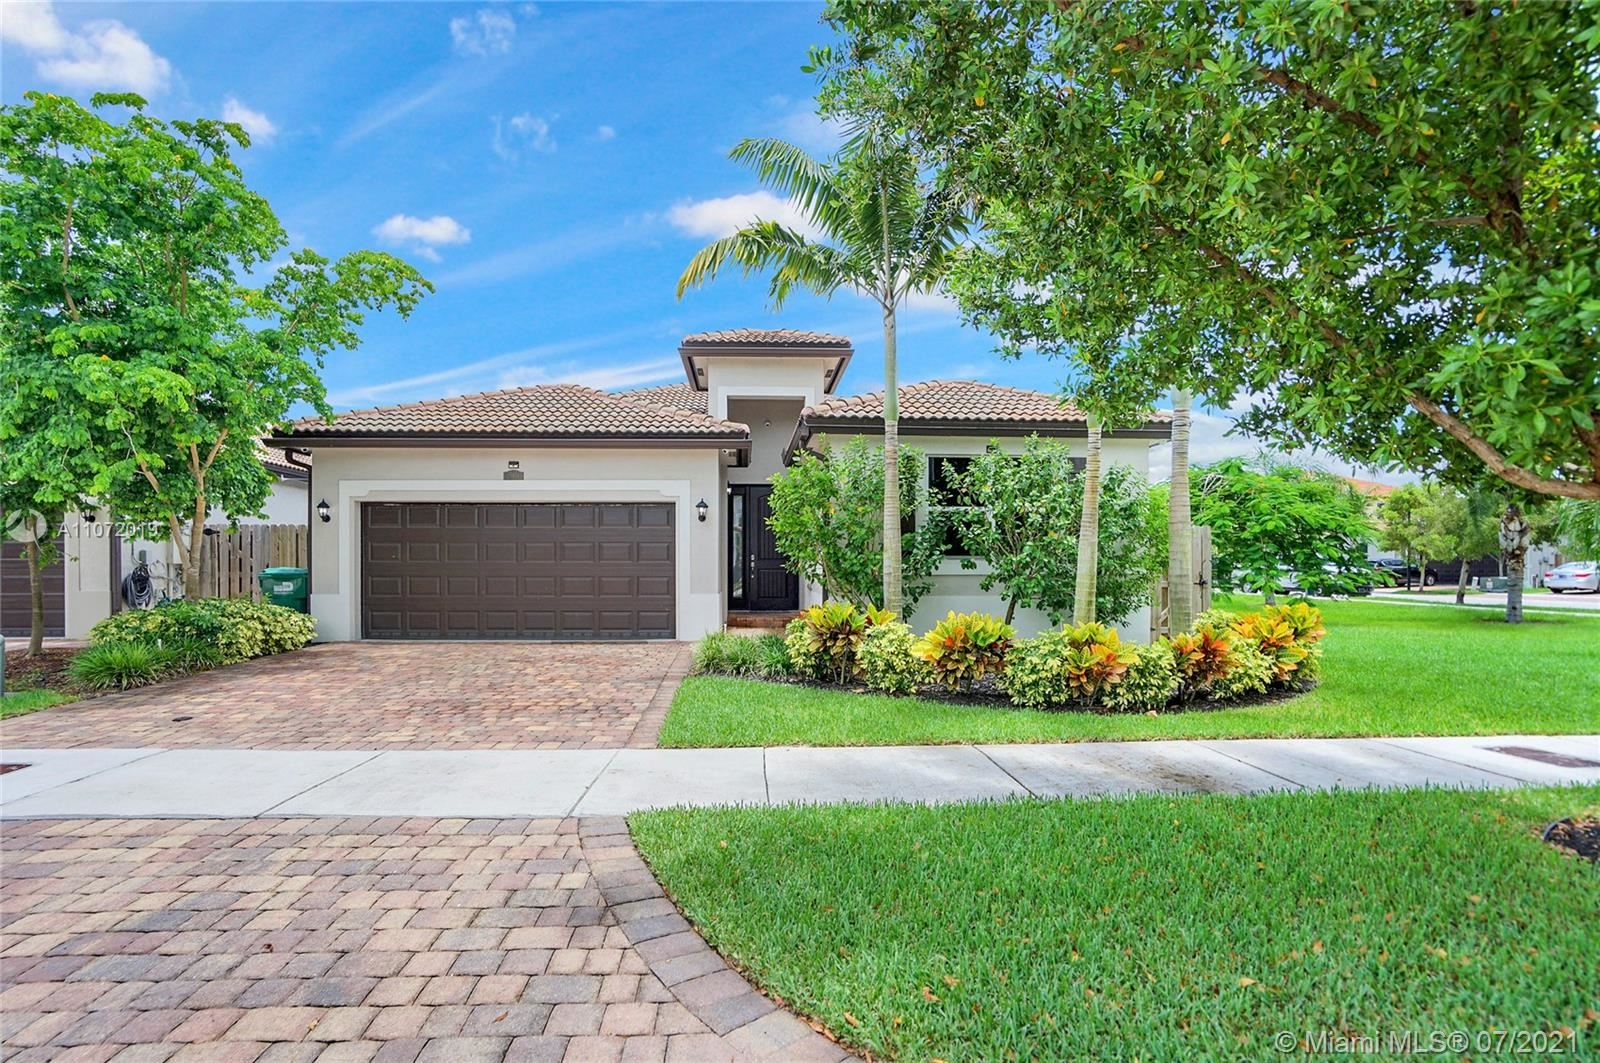 Photo of 25451 SW 121st Ave, Homestead, FL 33032 (MLS # A11072019)